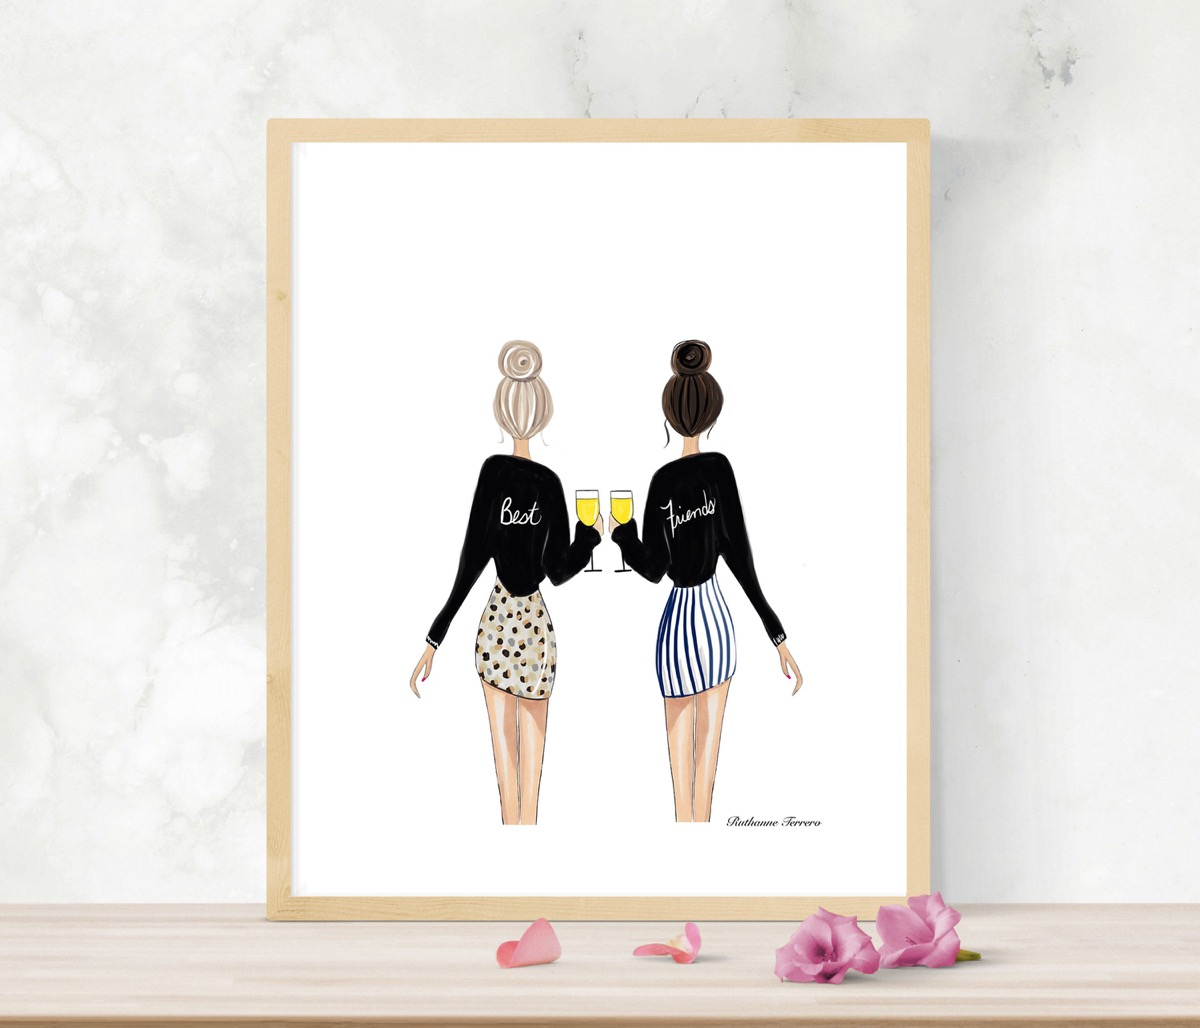 illustration of two women standing next to each other, best friend gifts